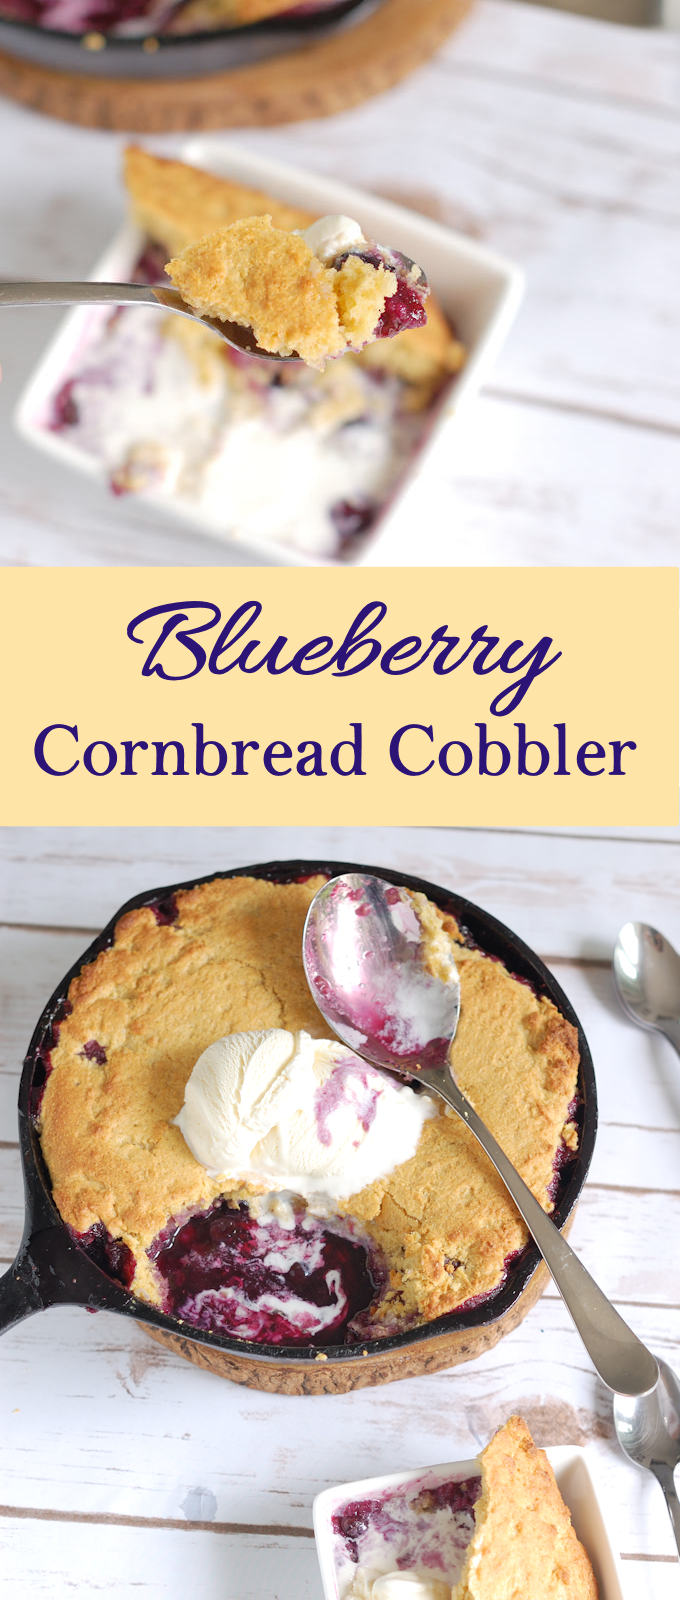 Fresh blueberries baked under a sweet cornbread crust is super easy to make. The perfect dessert for casual summer dining.